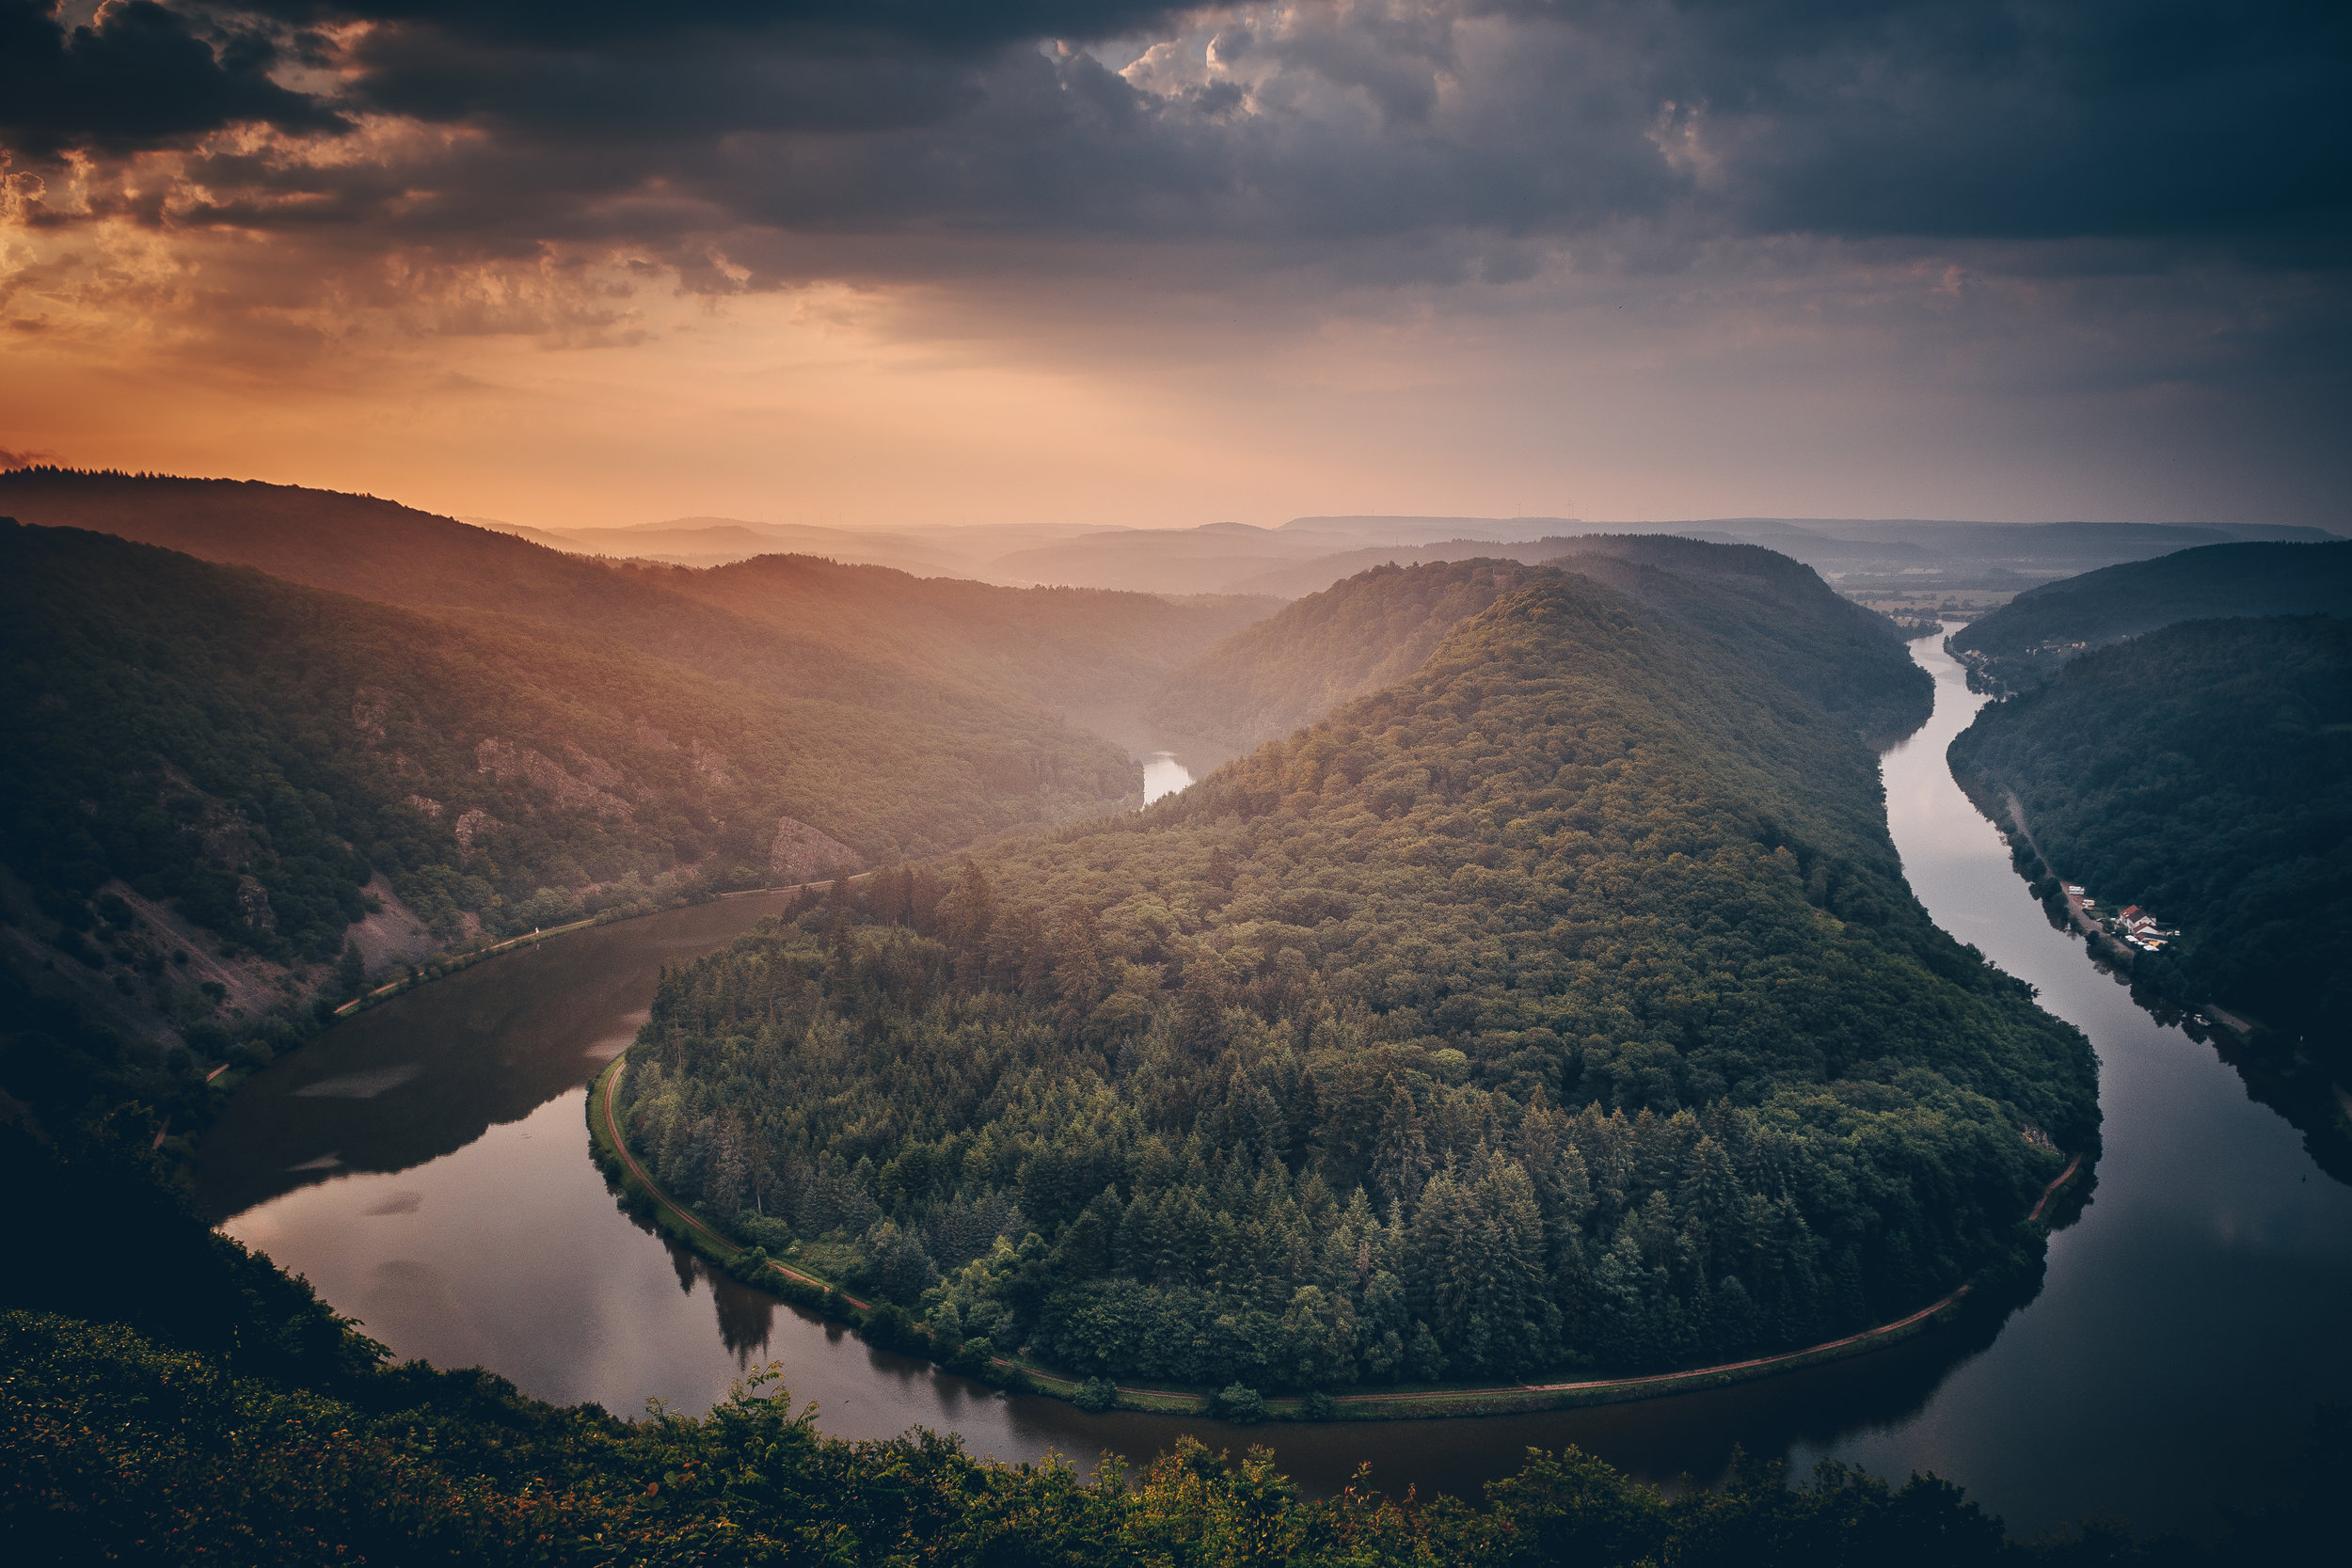 The amazing Saarschleife in Germany, right after sunset.